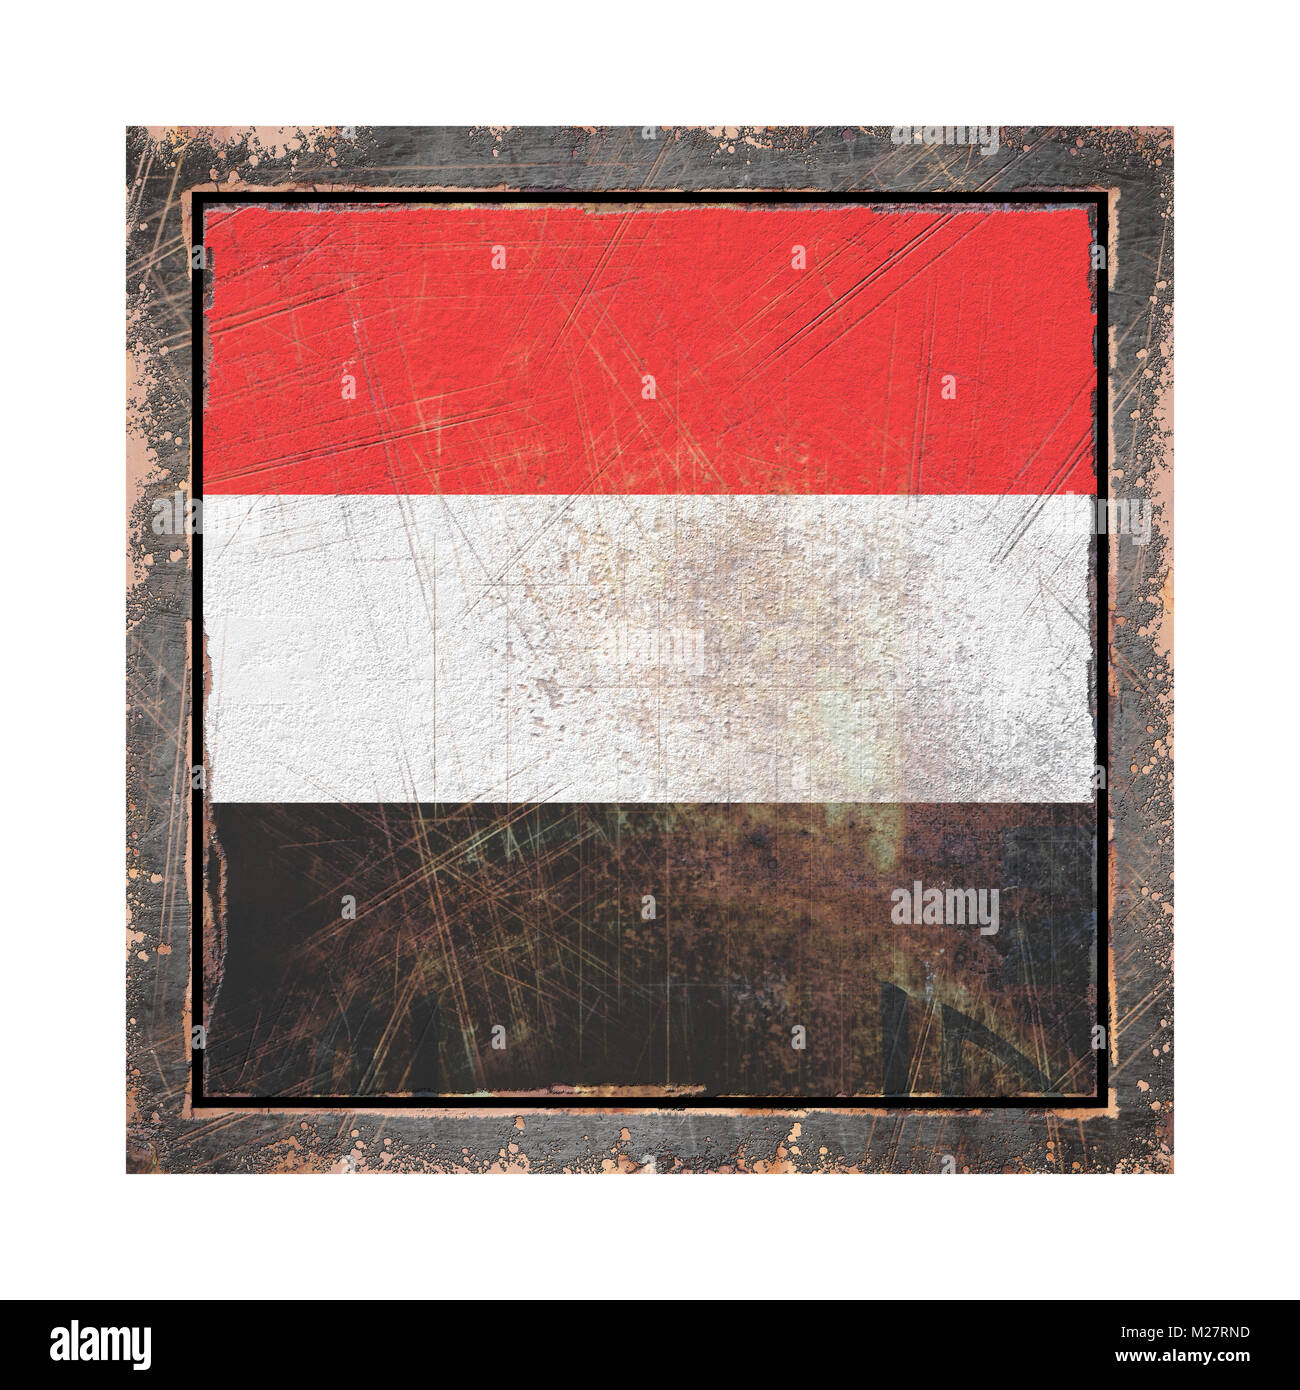 3d rendering of a Yemen flag over a rusty metallic plate wit a rusty frame. Isolated on white background. - Stock Image